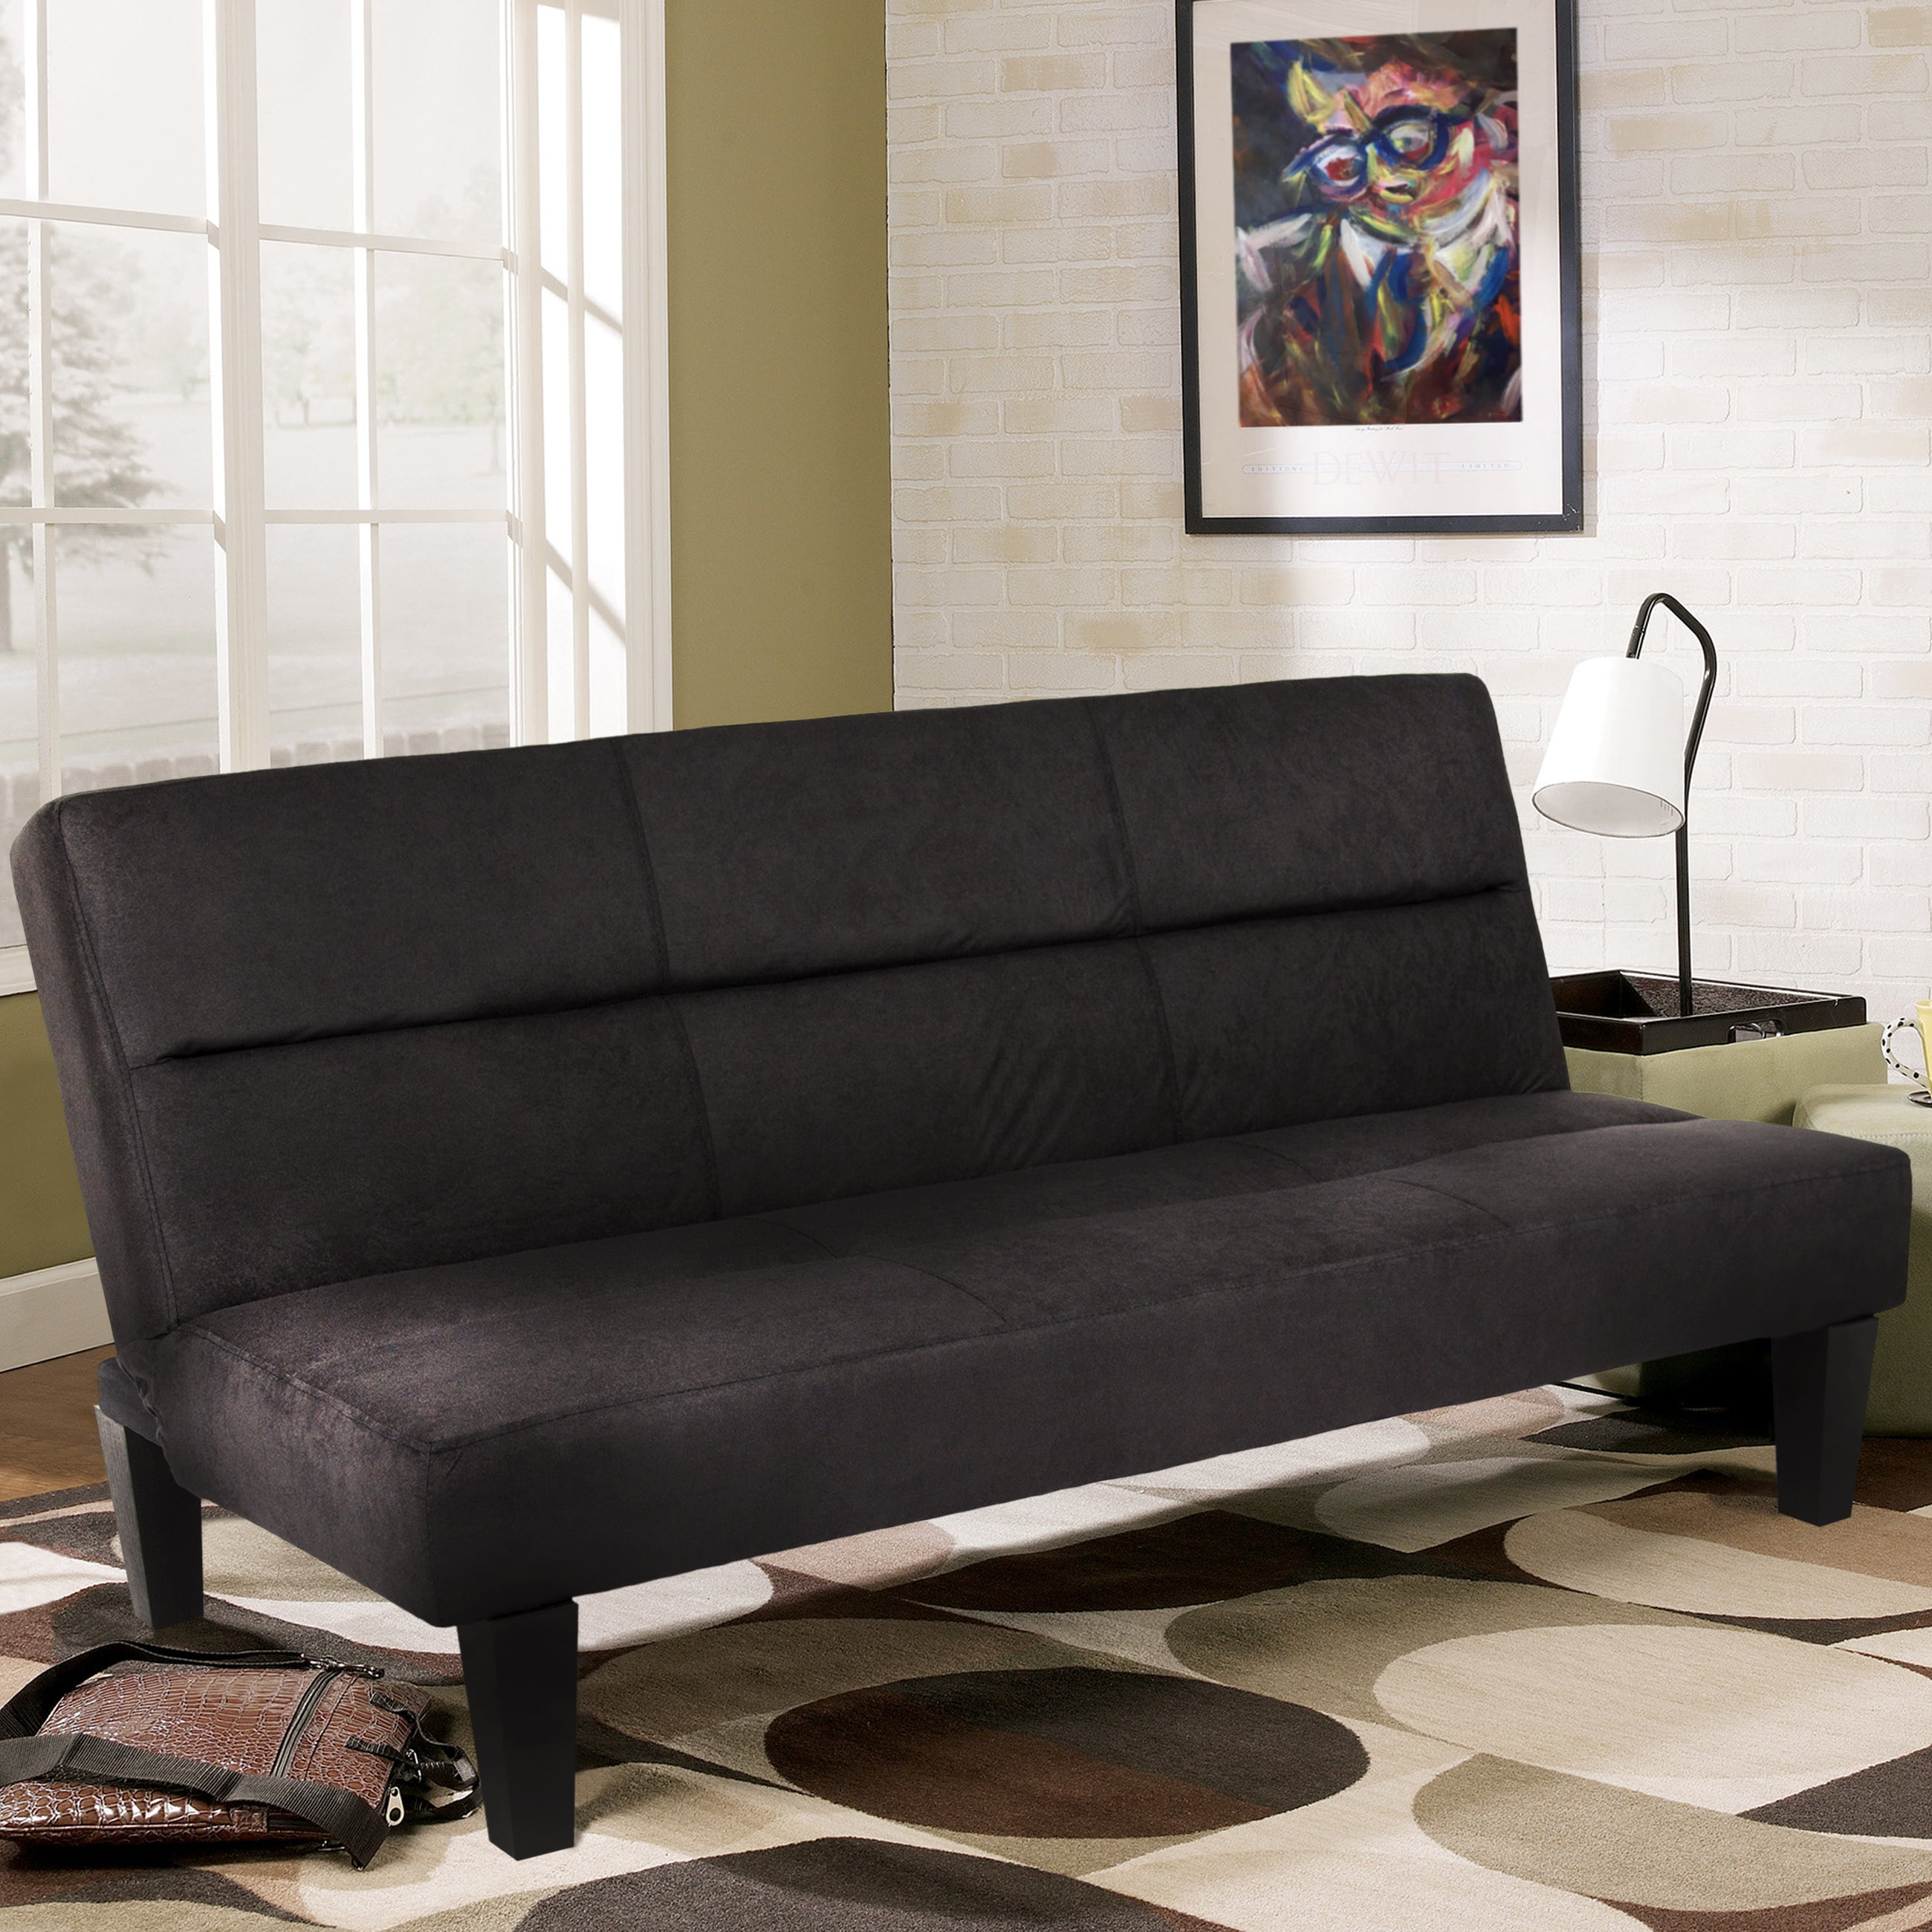 Best Choice Products Convertible Modern Futon Couch And Sofa Bed